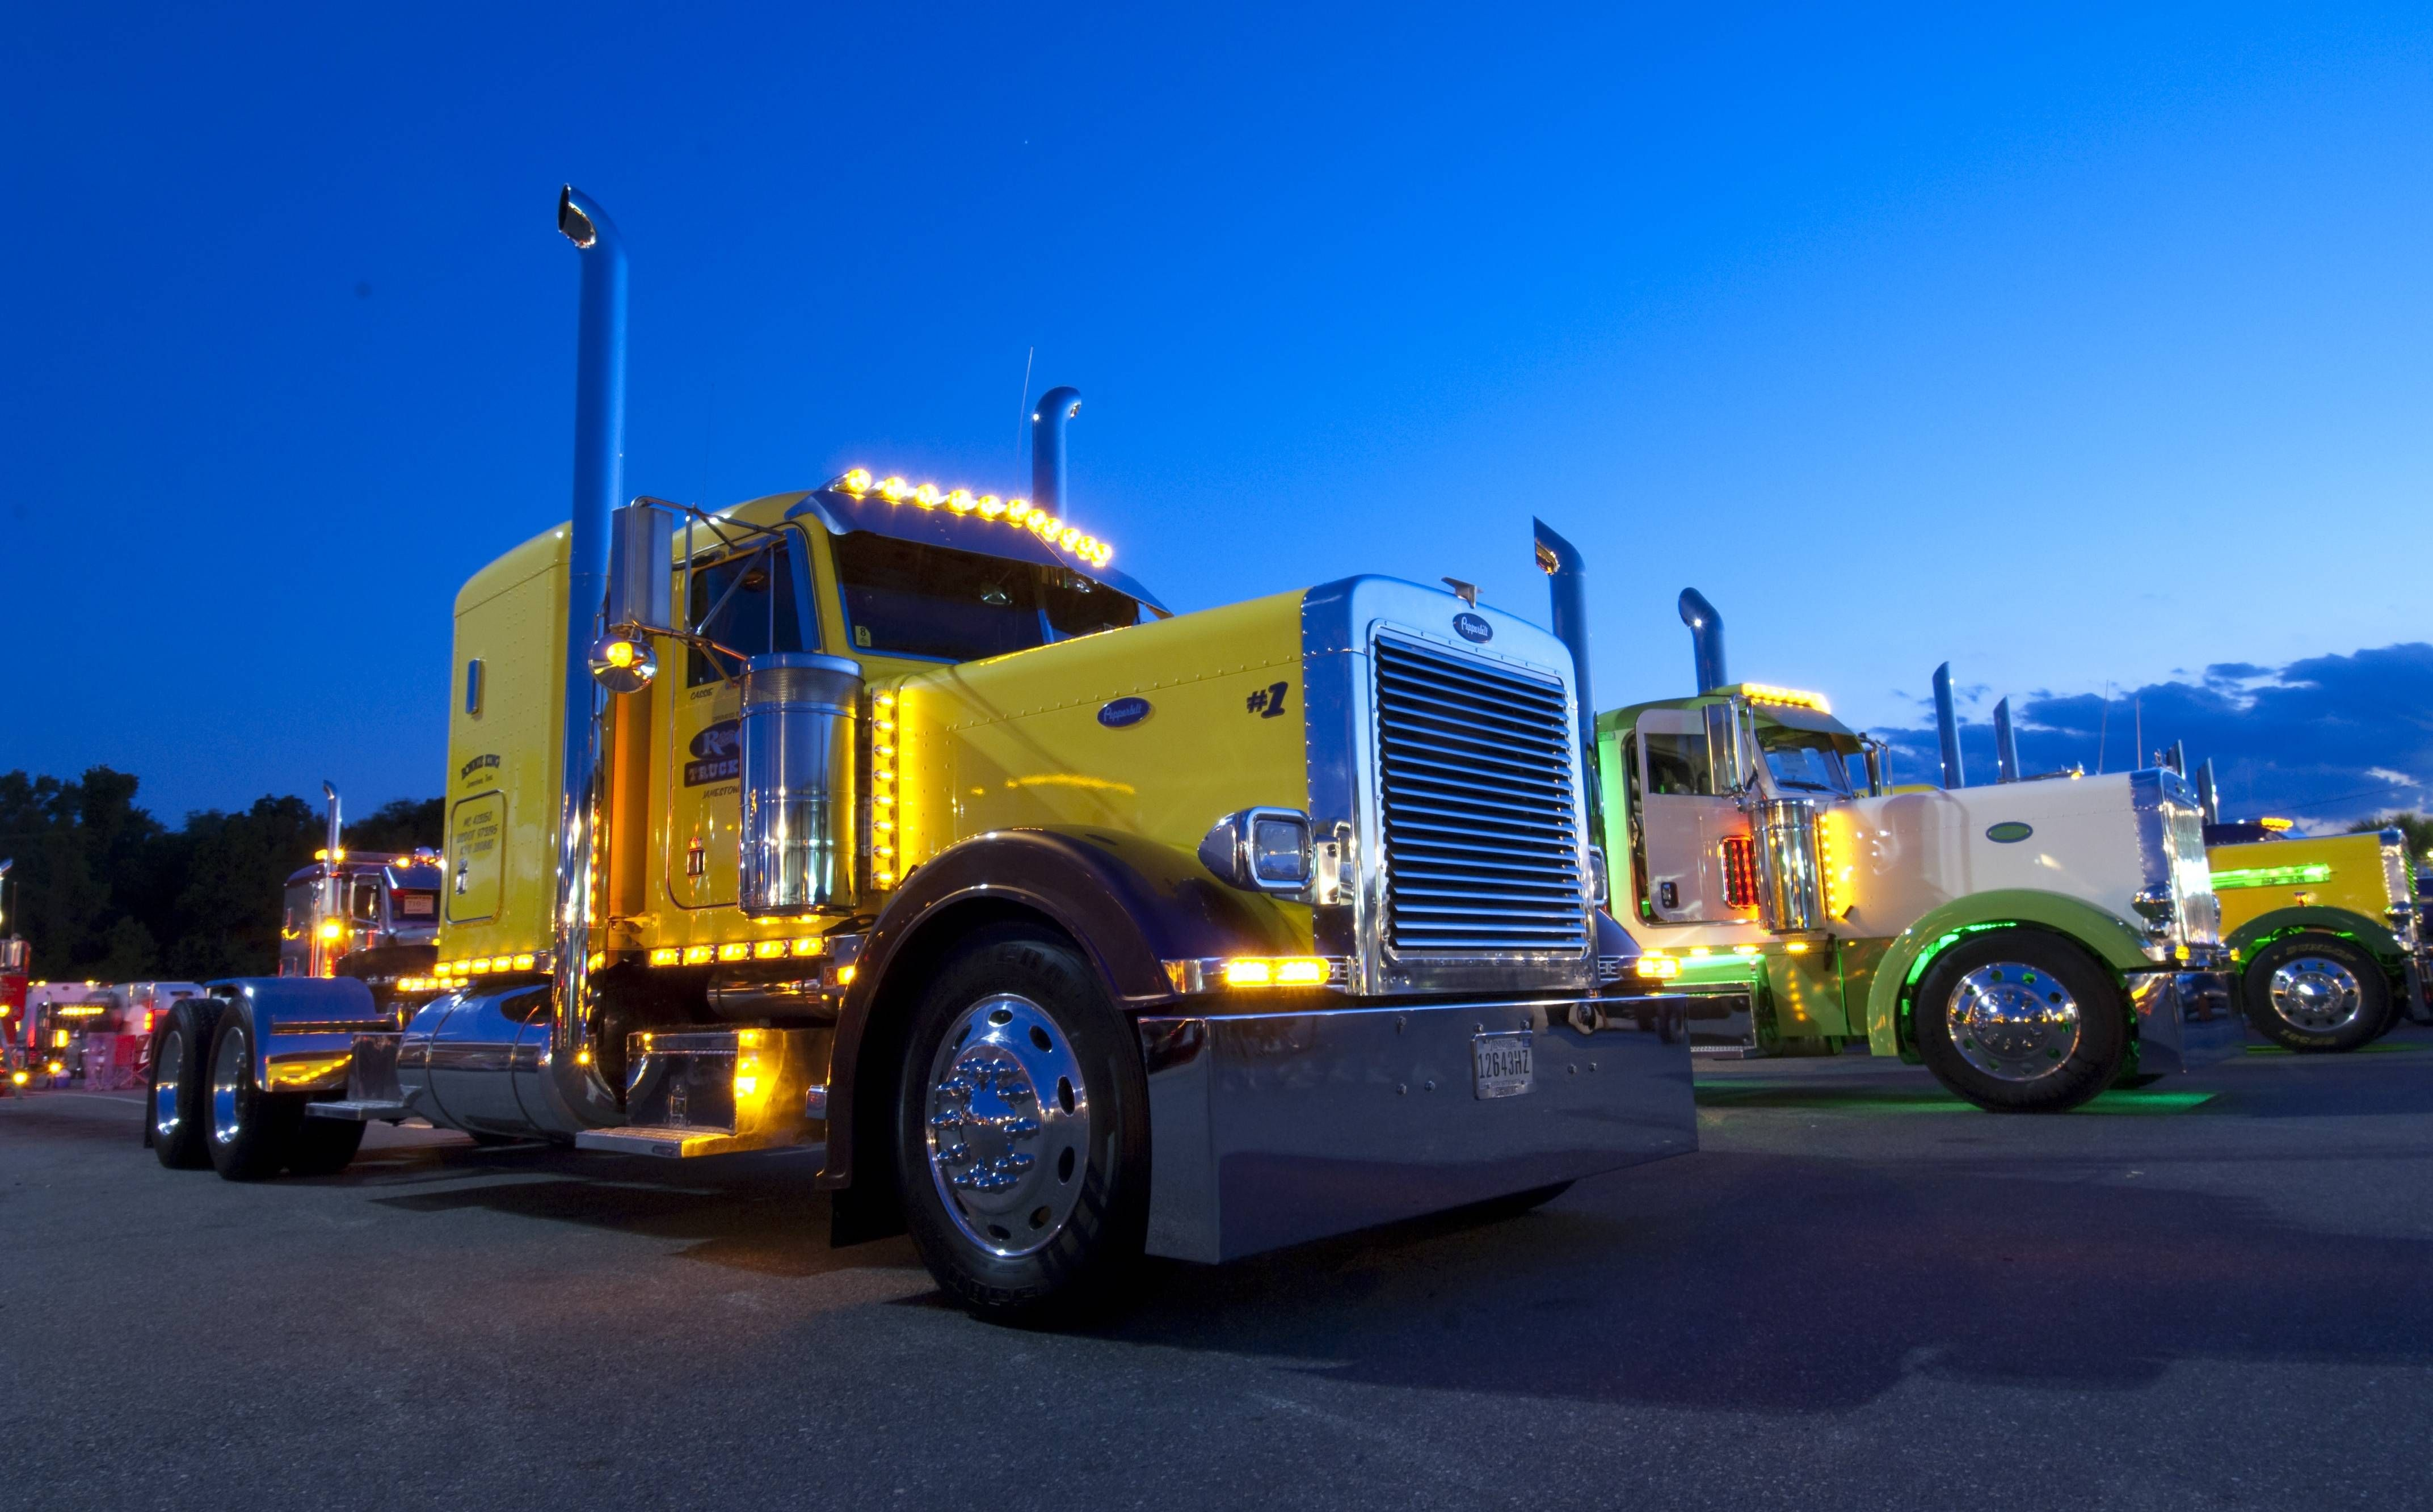 Vehicles For Blue Truck Wallpaper With Images Trucks